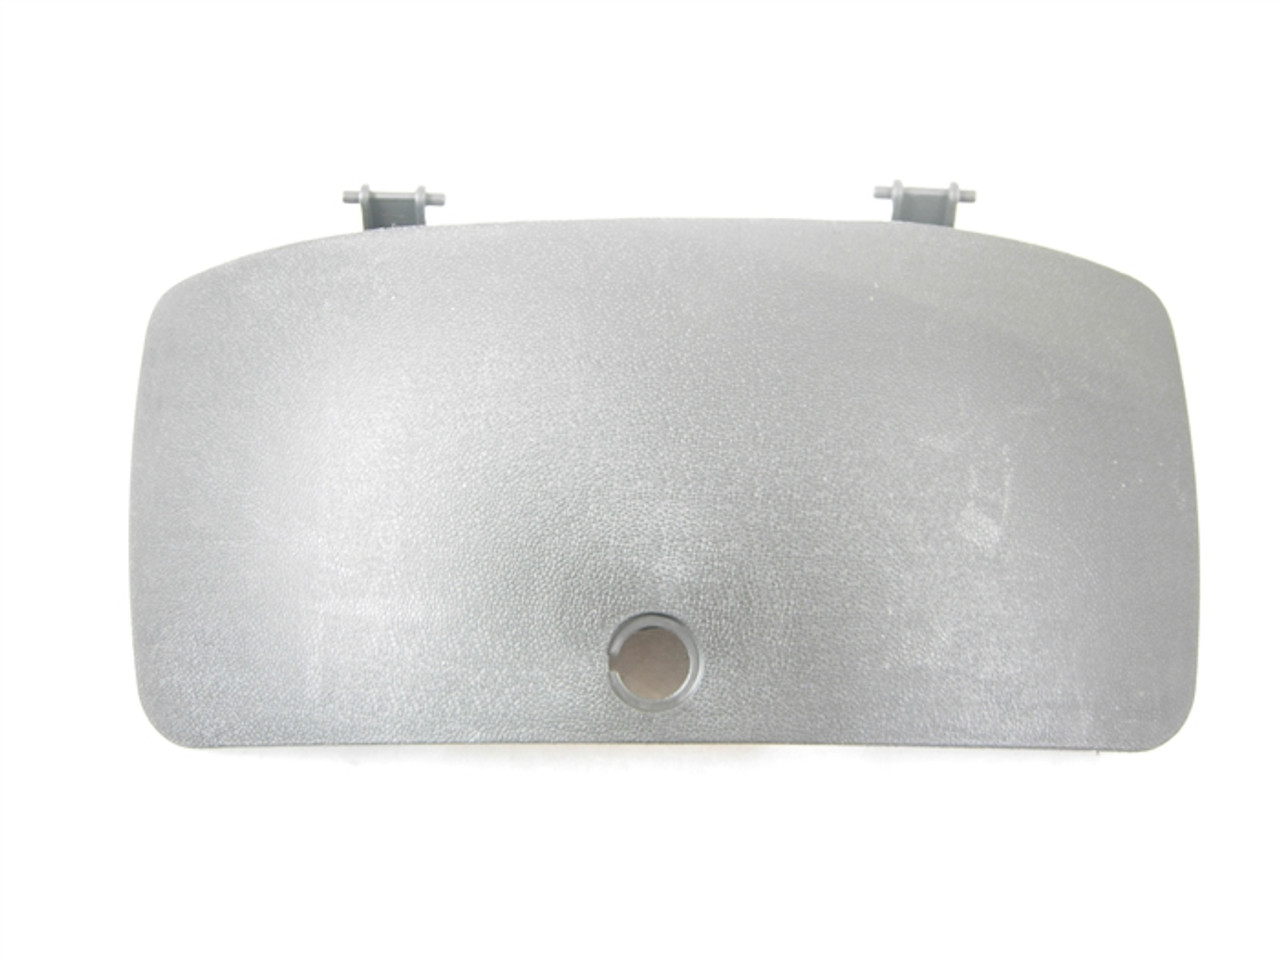 GLOVE BOX COVER 11915-A107-7